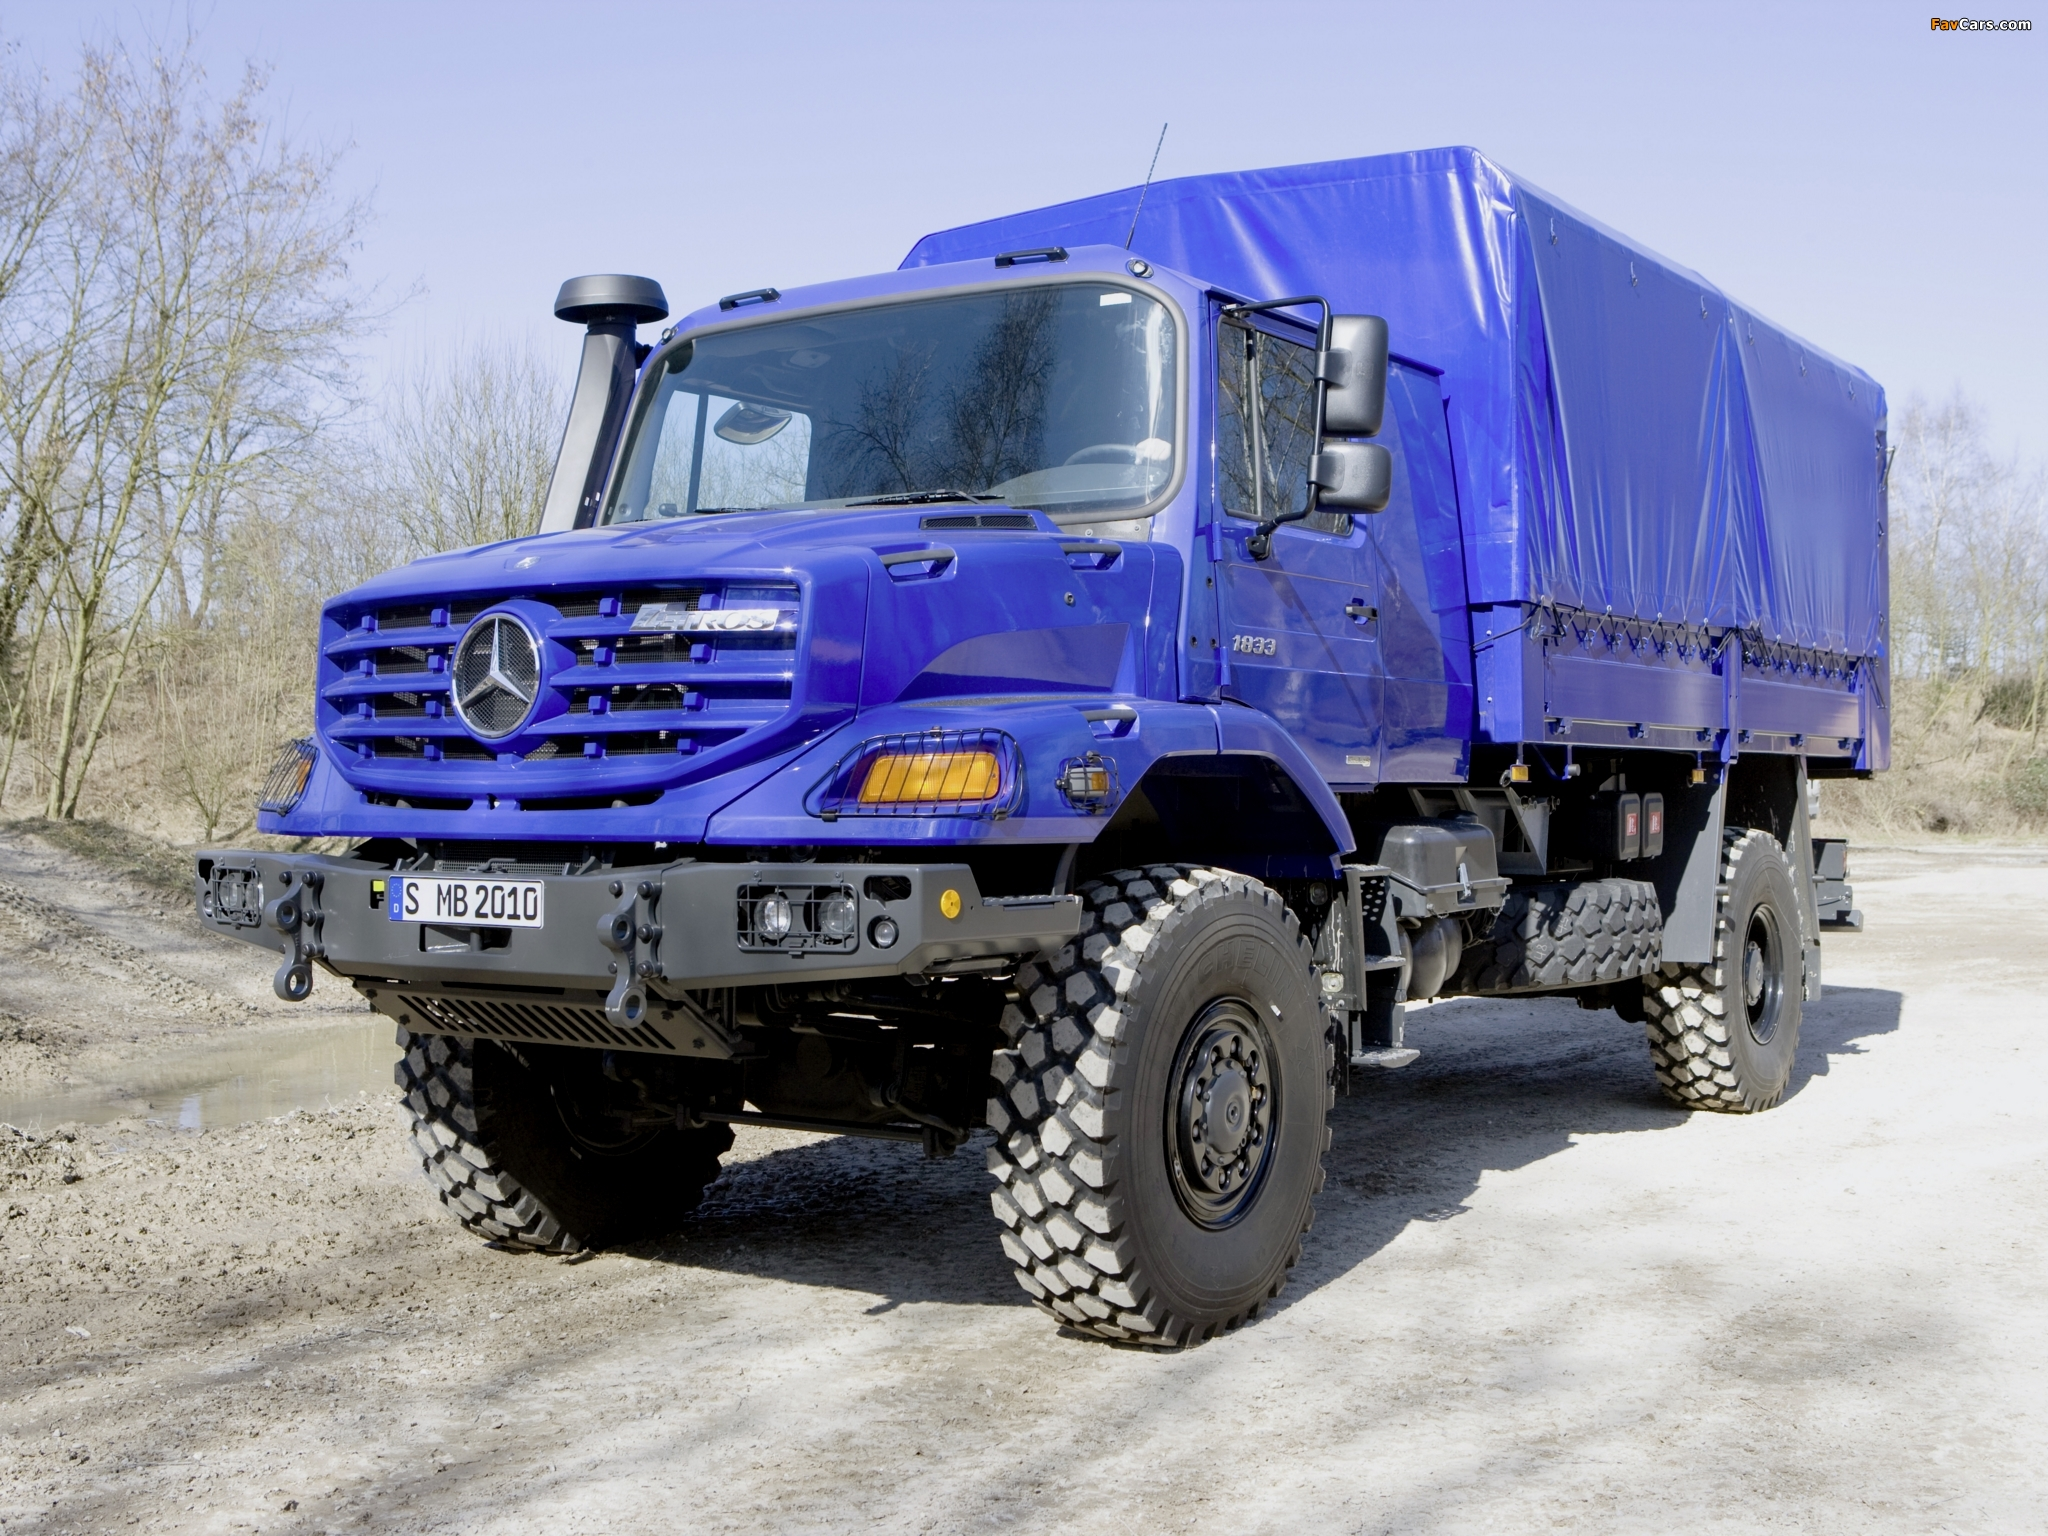 Image gallery mercedes zetros for Mercedes benz zetros 6x6 expedition vehicle